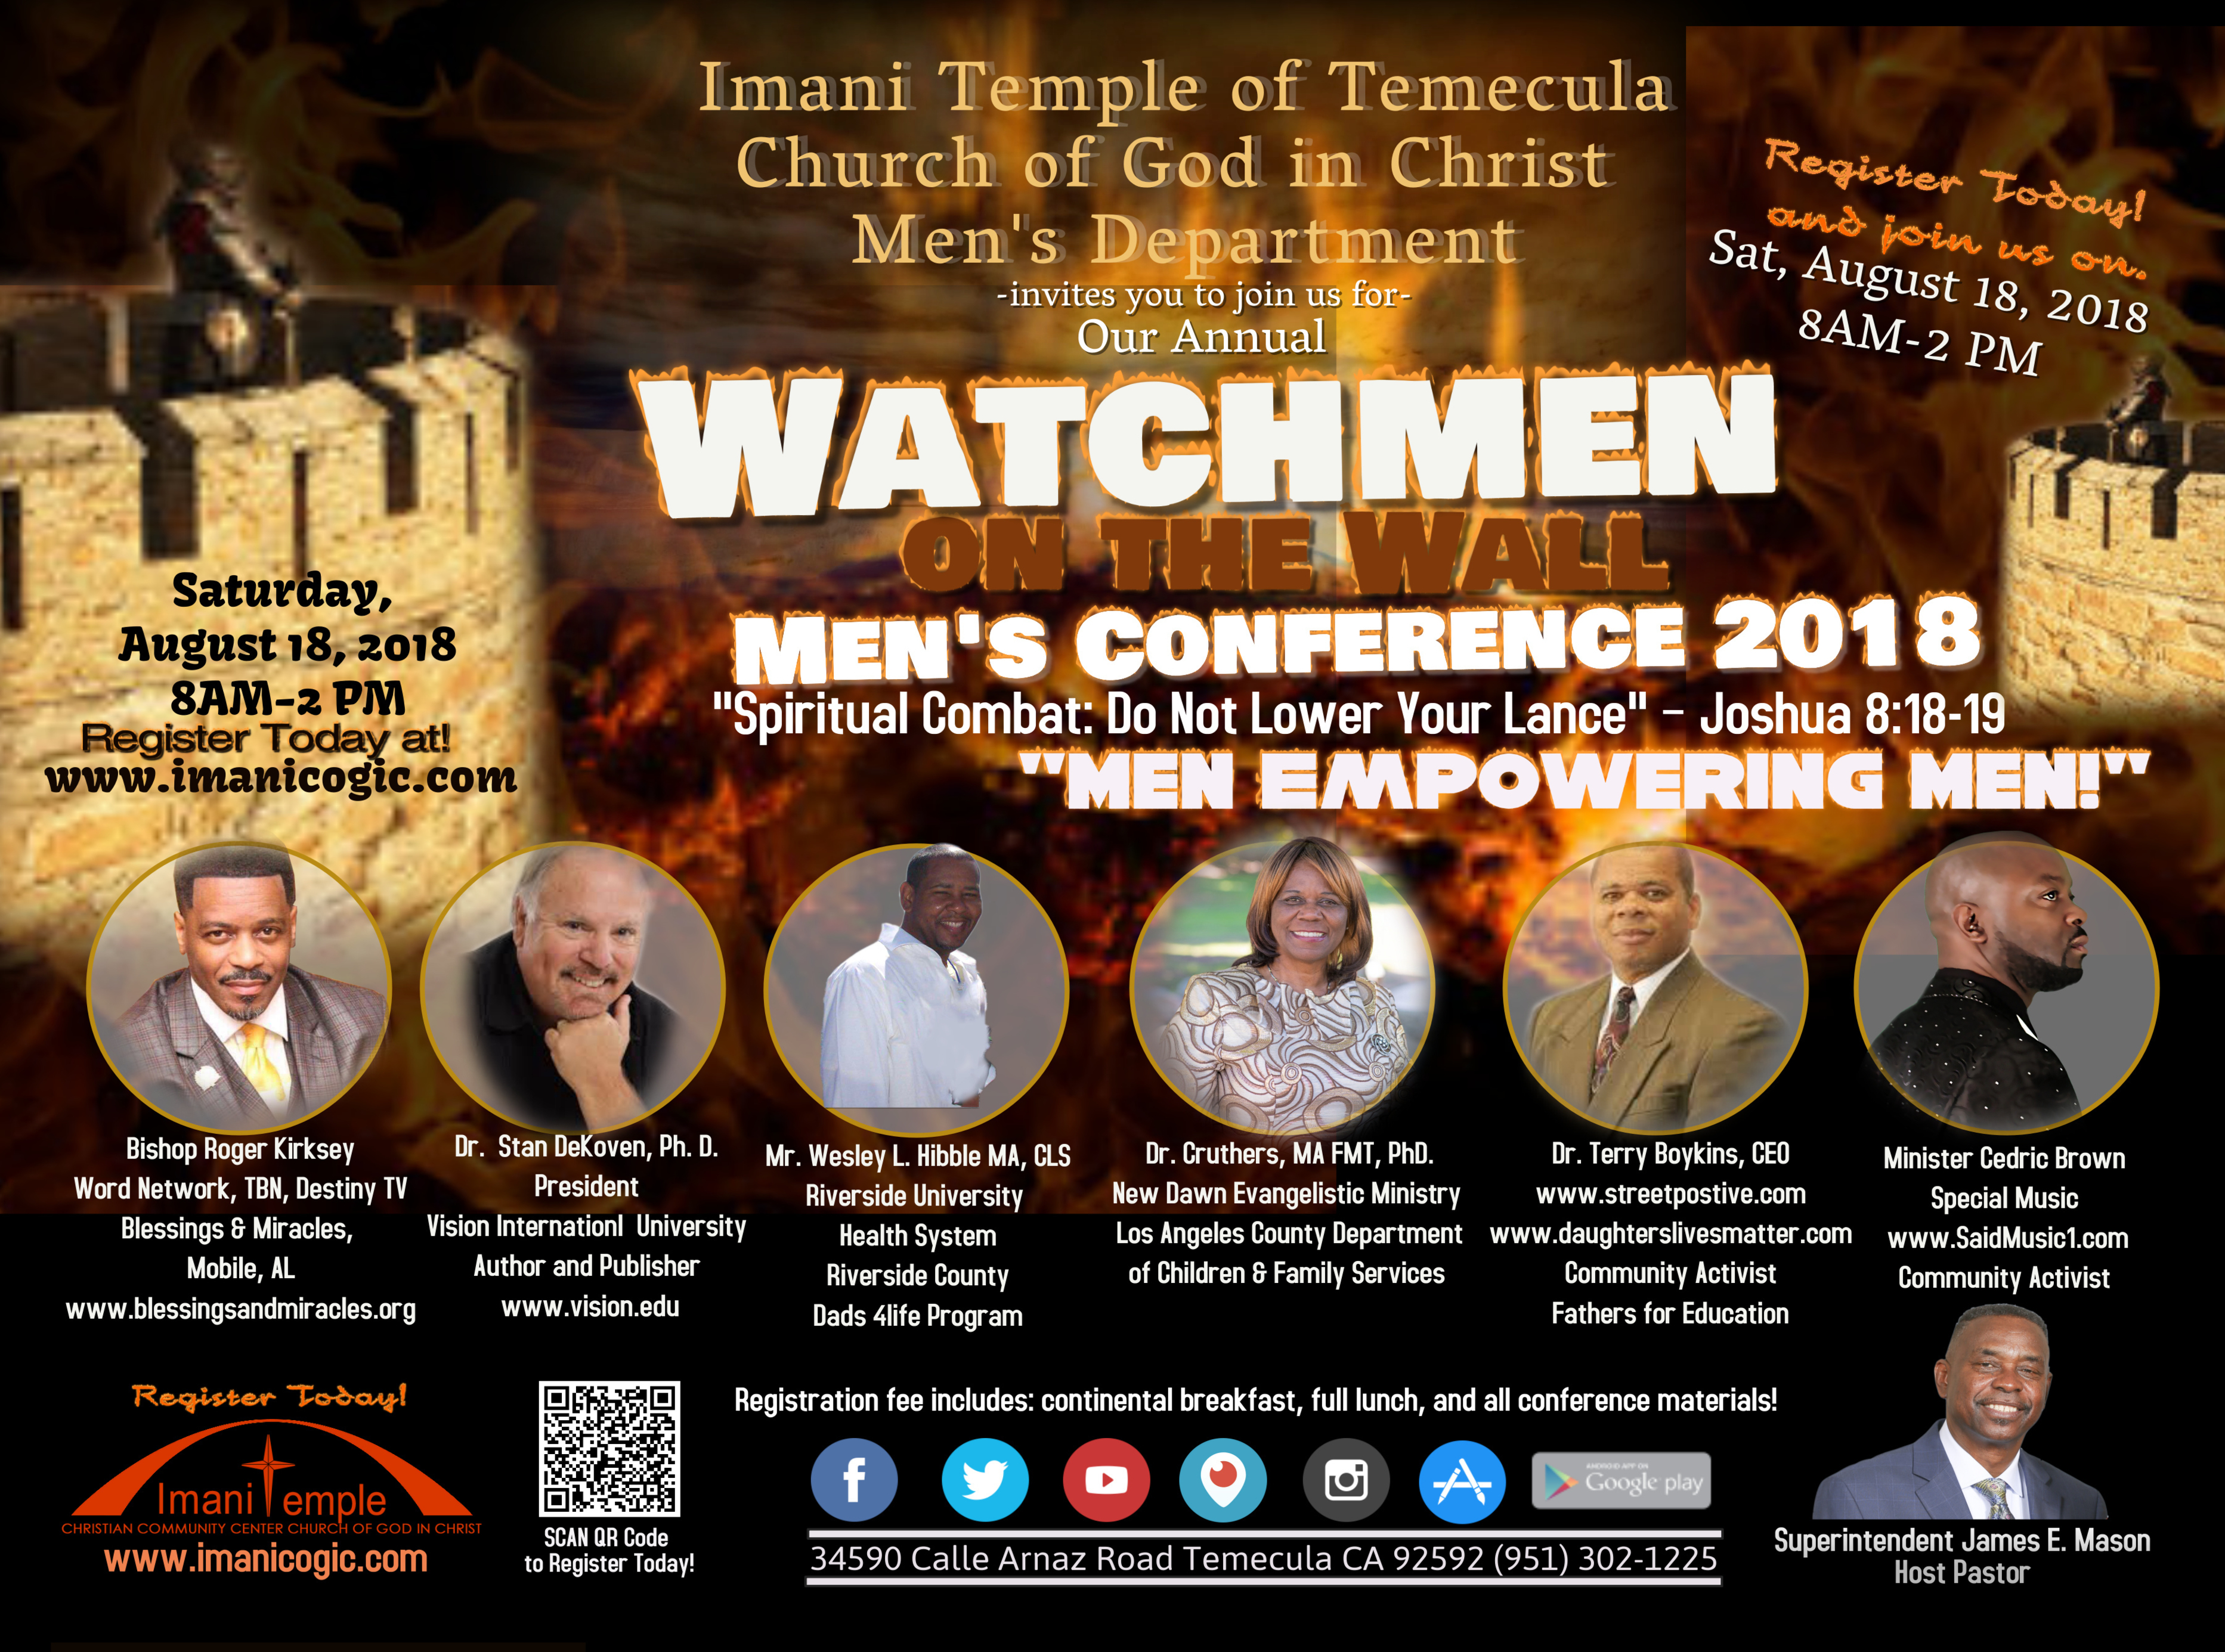 Men's Conference: Watchmen of the Wall Men's Conference!